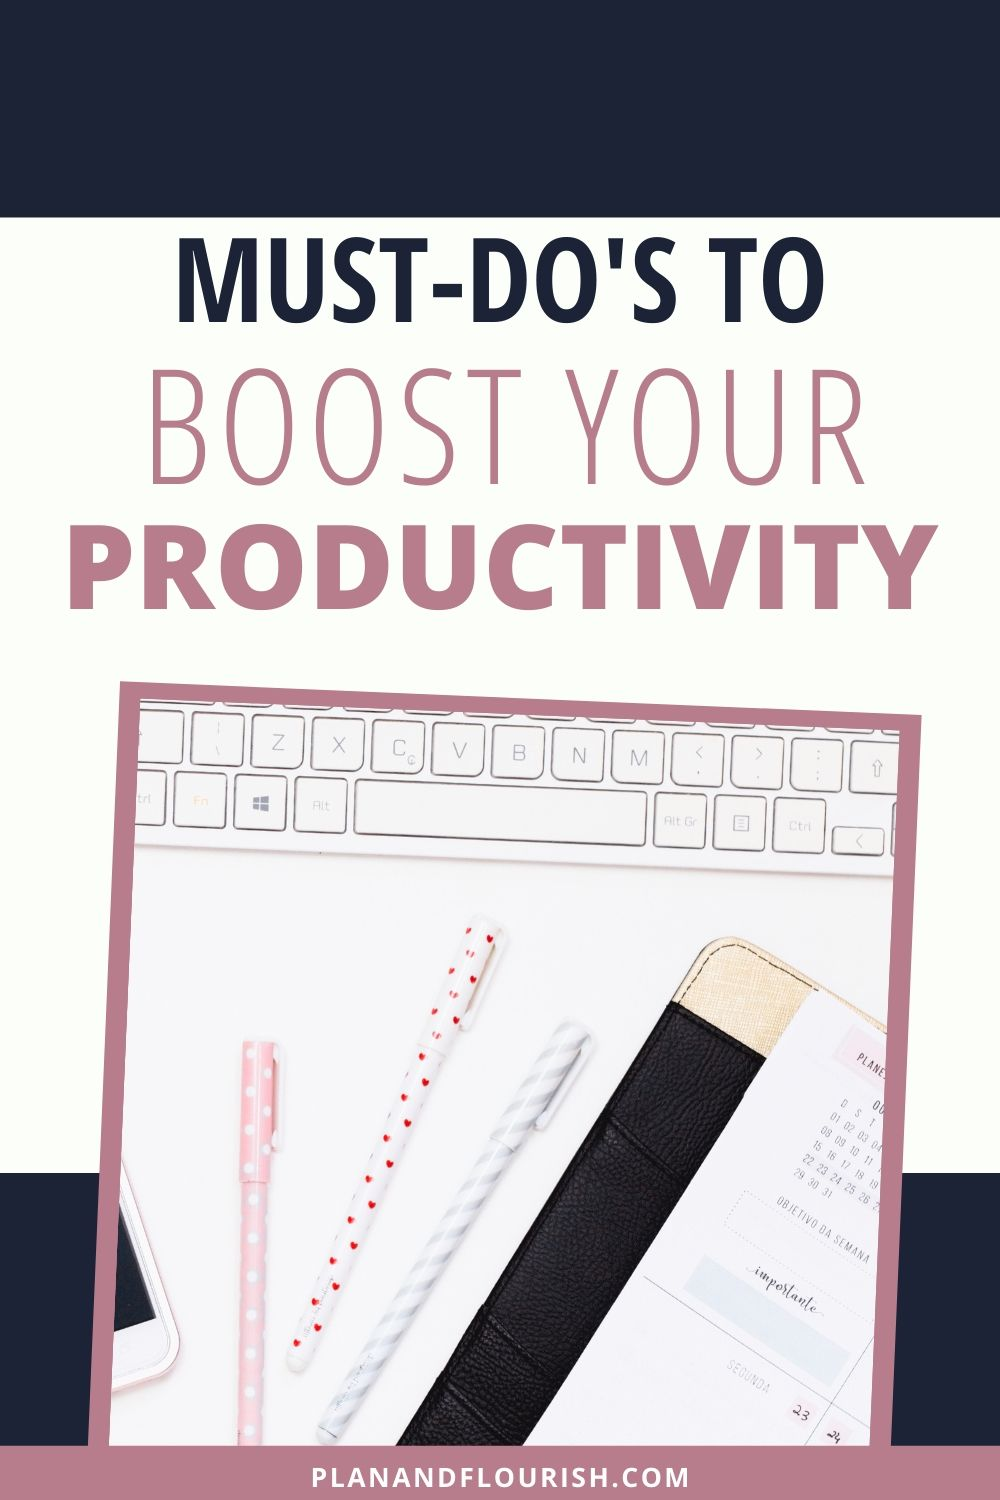 Must-Do's To Boost Your Productivity